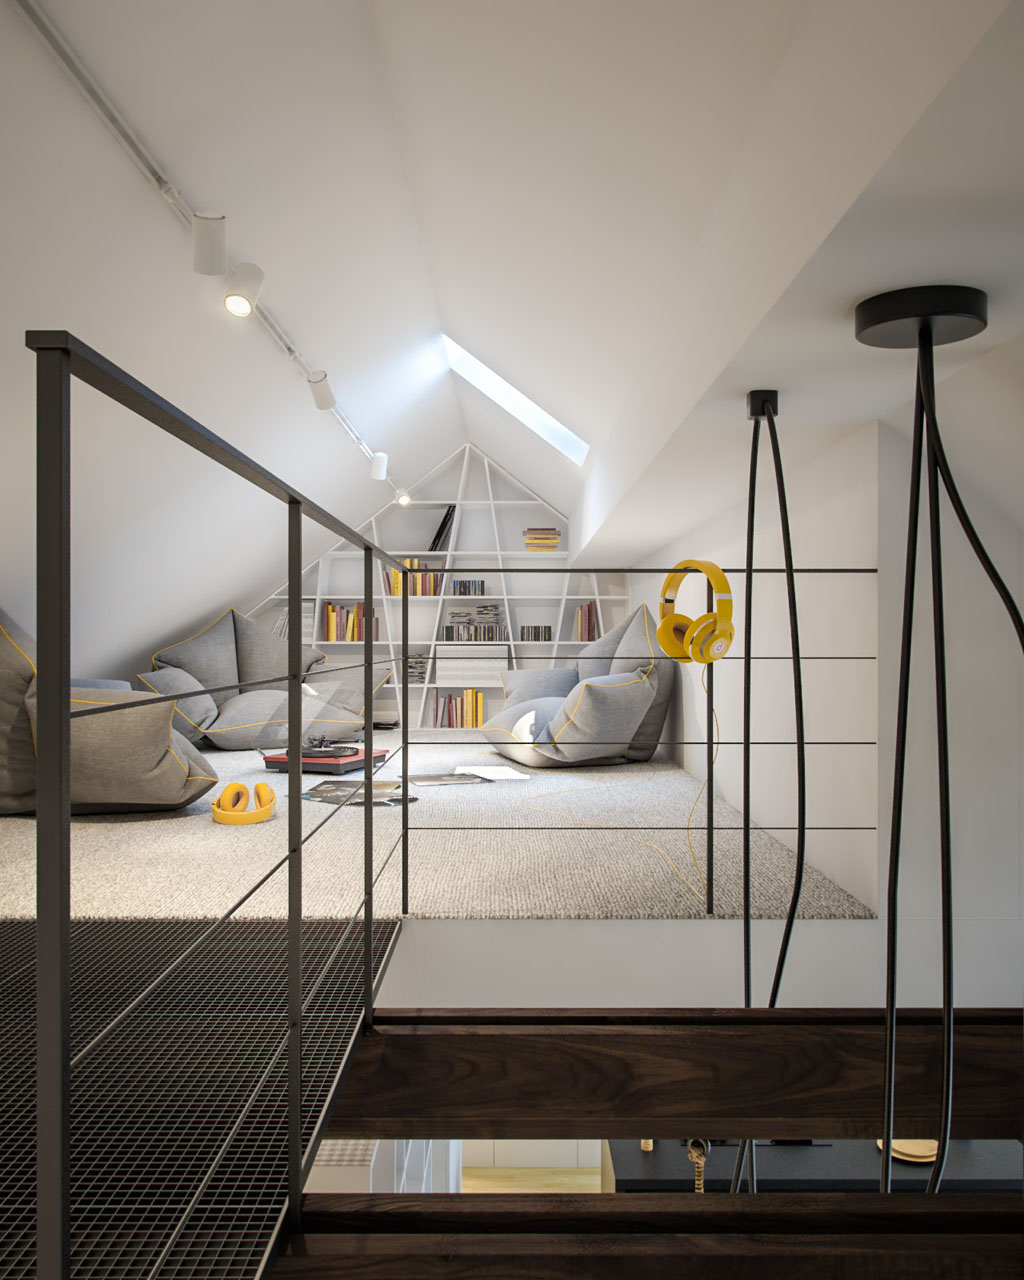 Lofted Reading Area - 3 creative interiors that utilize bright accents